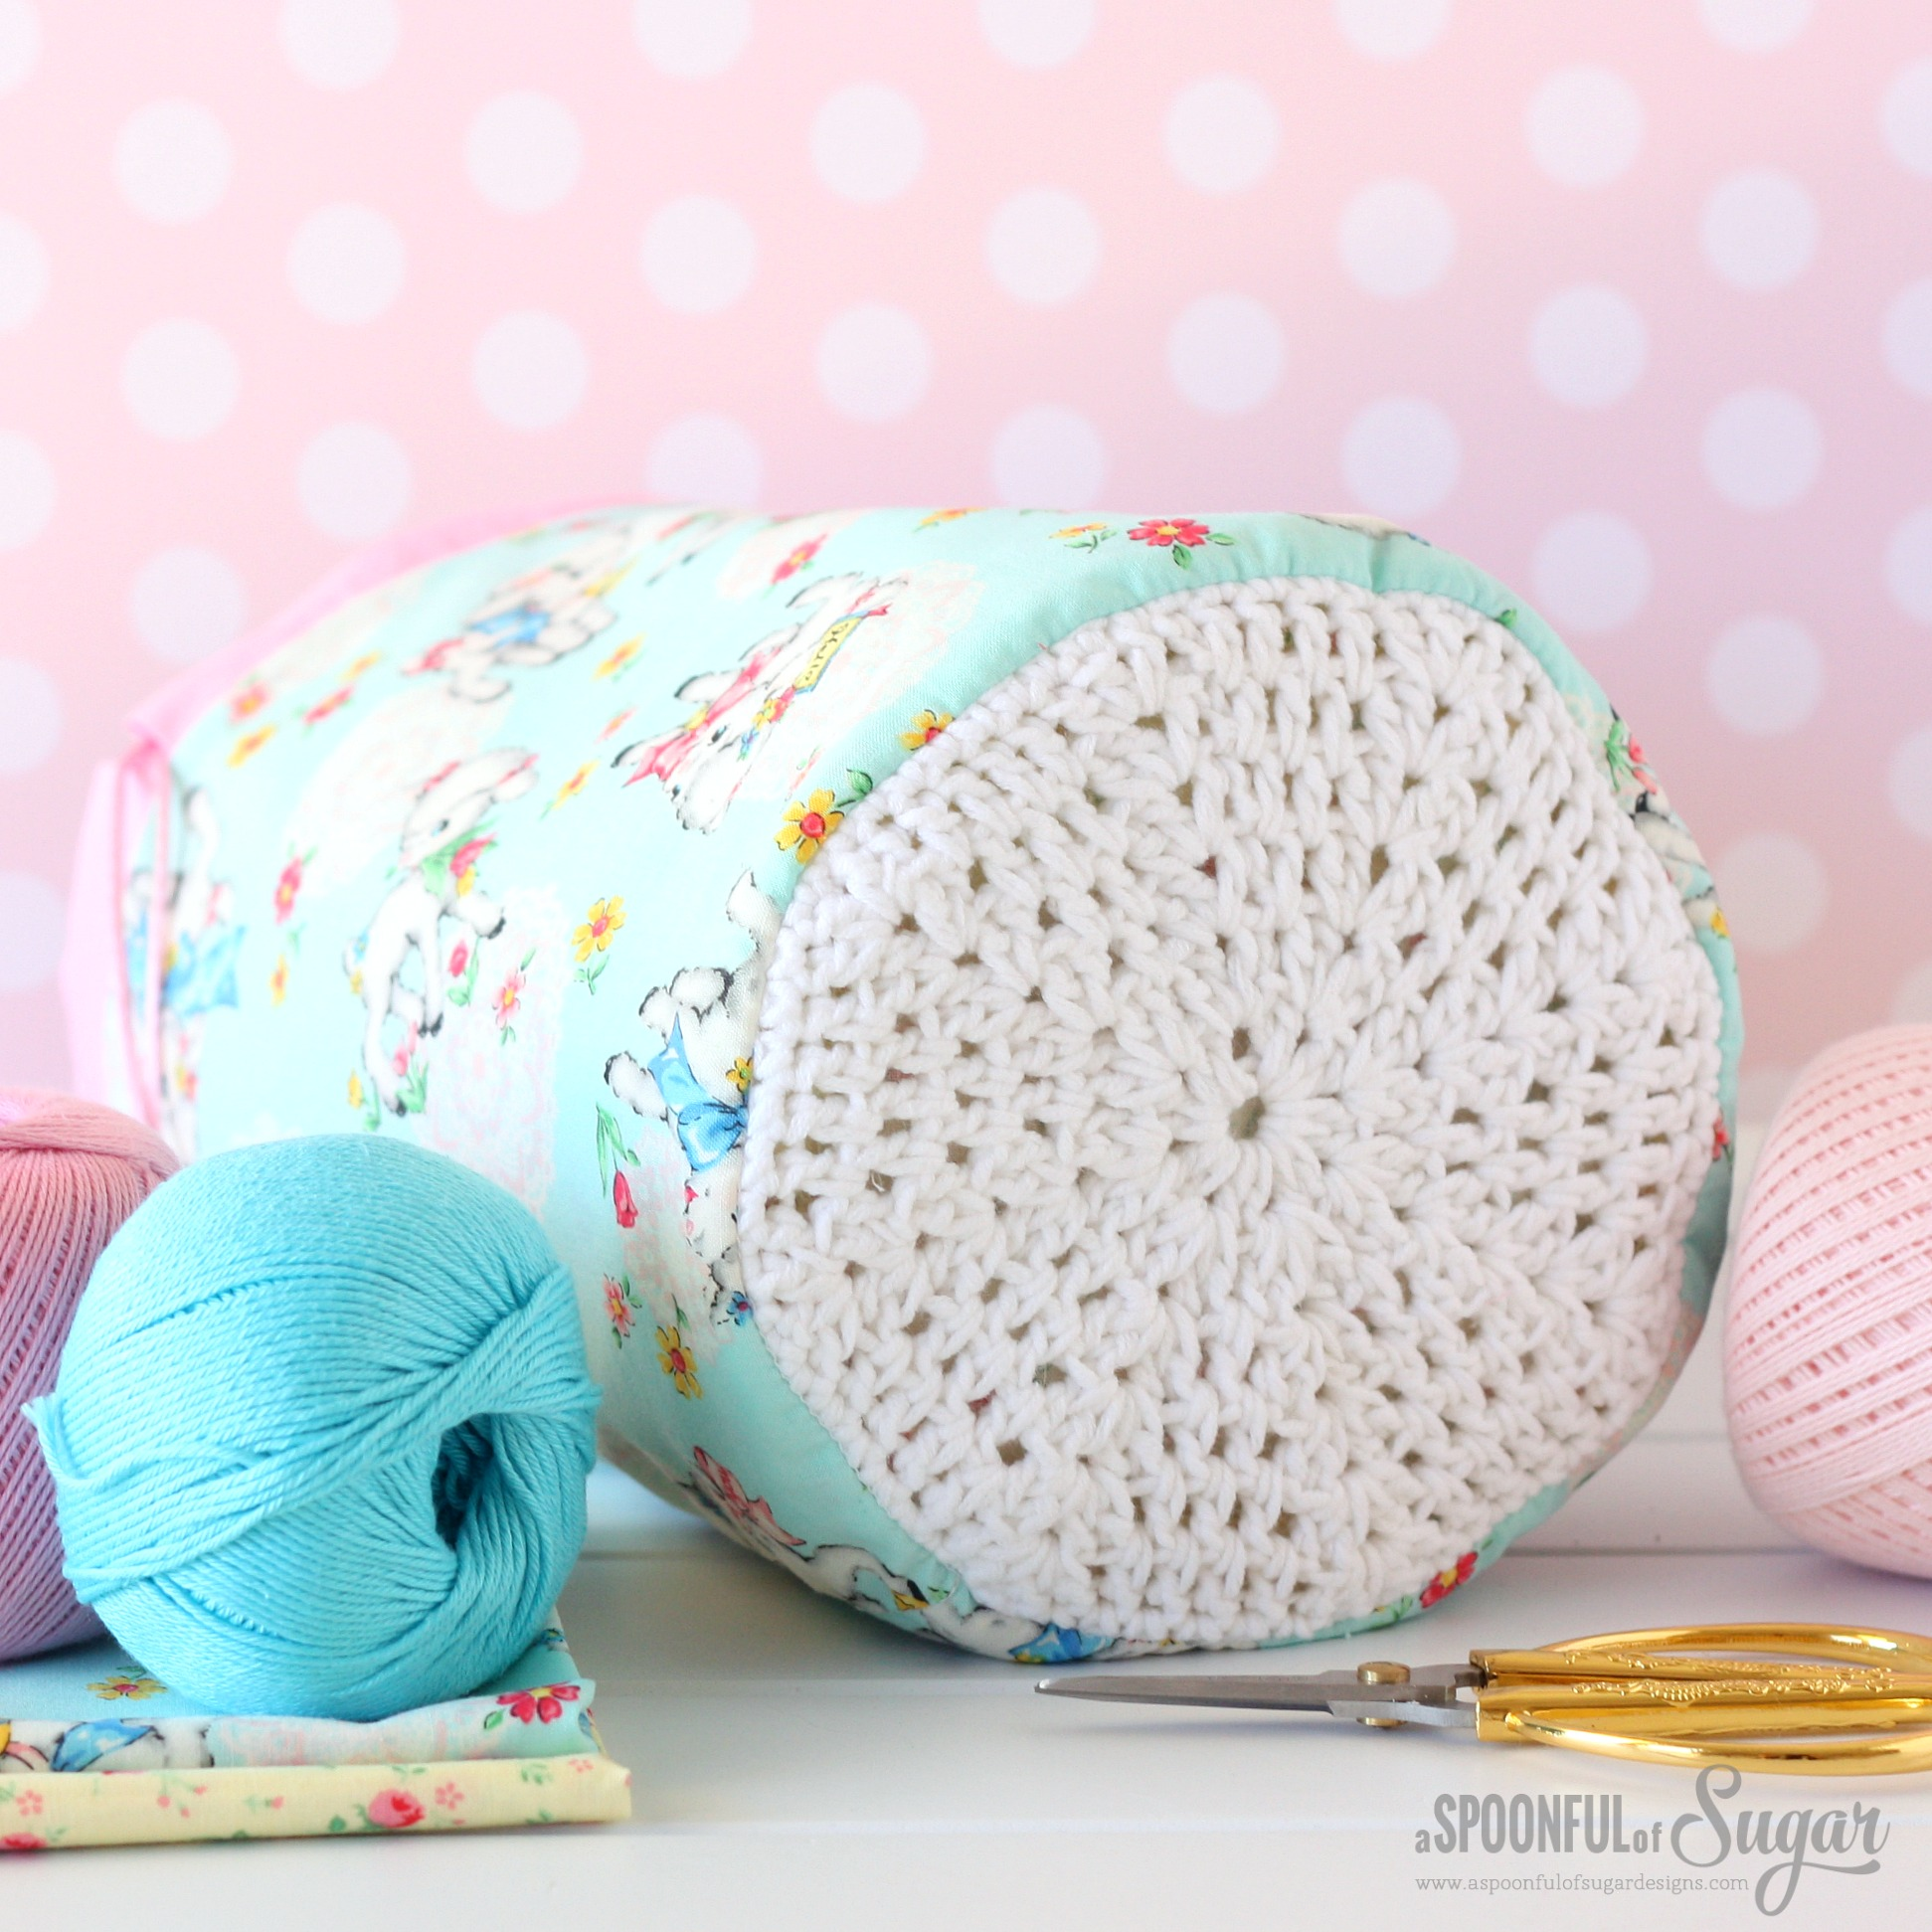 Zakka Dilly Bag from A Spoonful of Sugar: Sew 20 Simple Projects to Sweeten your Surroundings Zakka Style by Lisa Cox